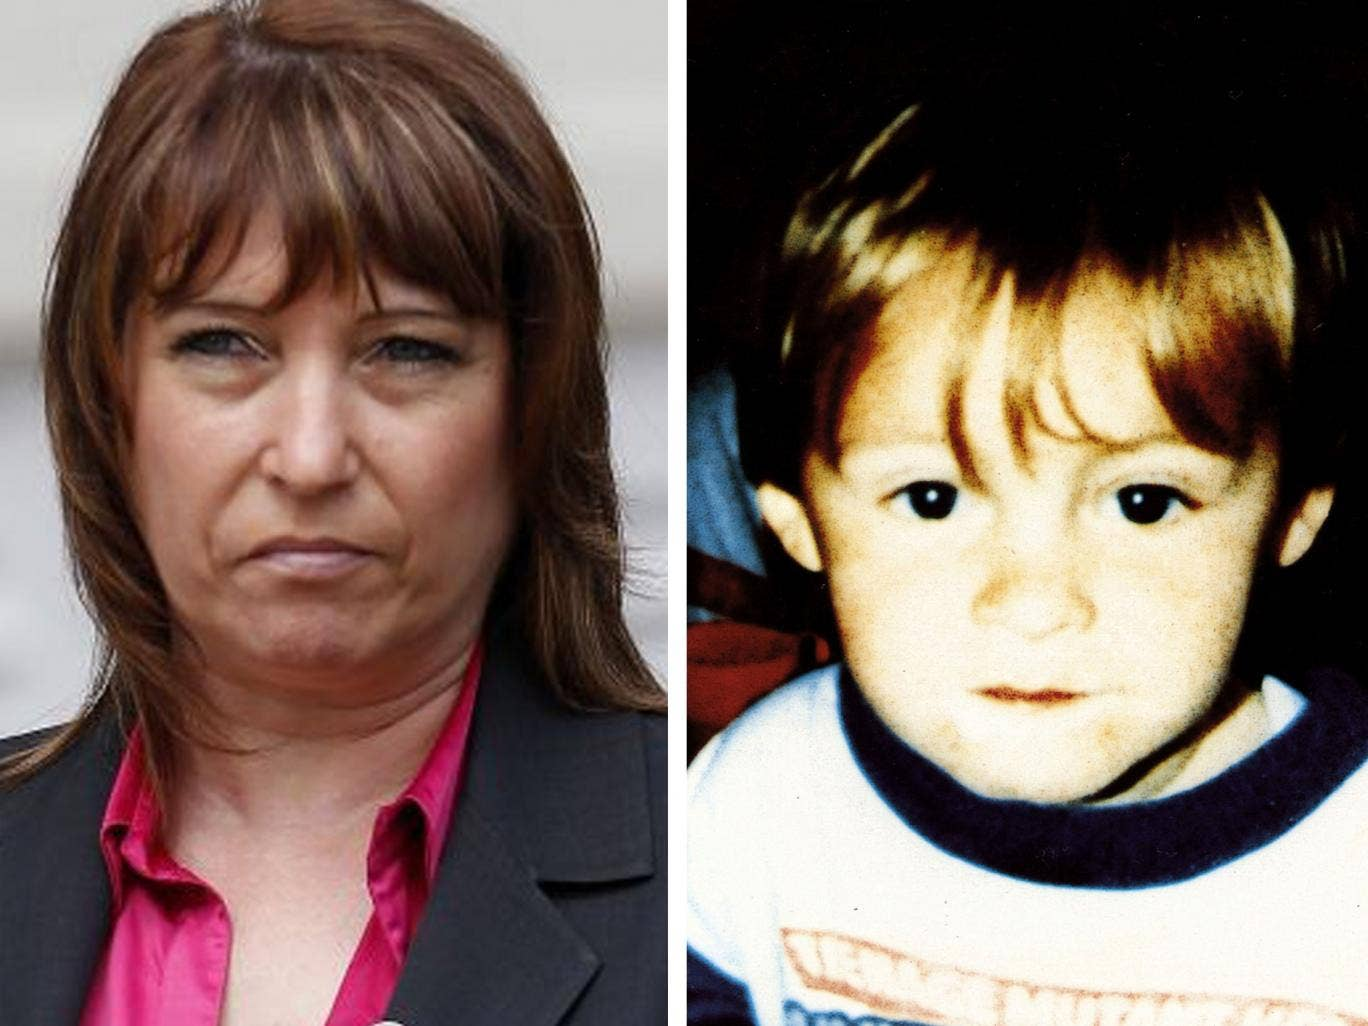 Denise Fergus, the mother of murdered toddler James Bulger (right), has been targeted by a troll on Twitter